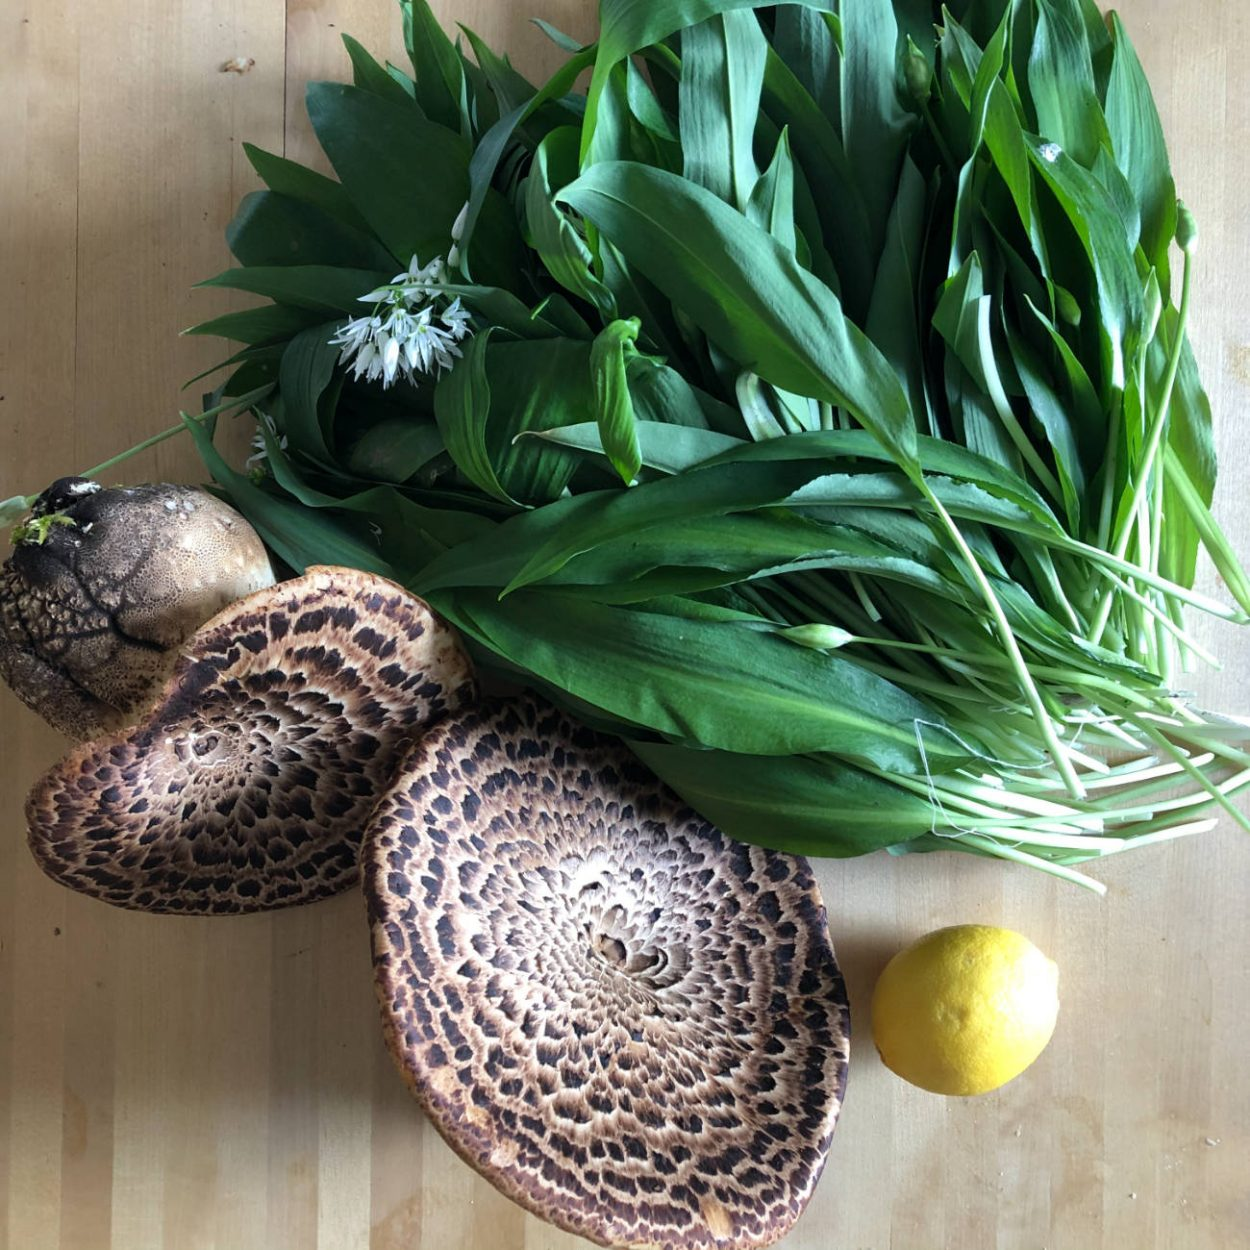 Wild garlic and Dryad's Saddle mushrooms with a lemon for scale